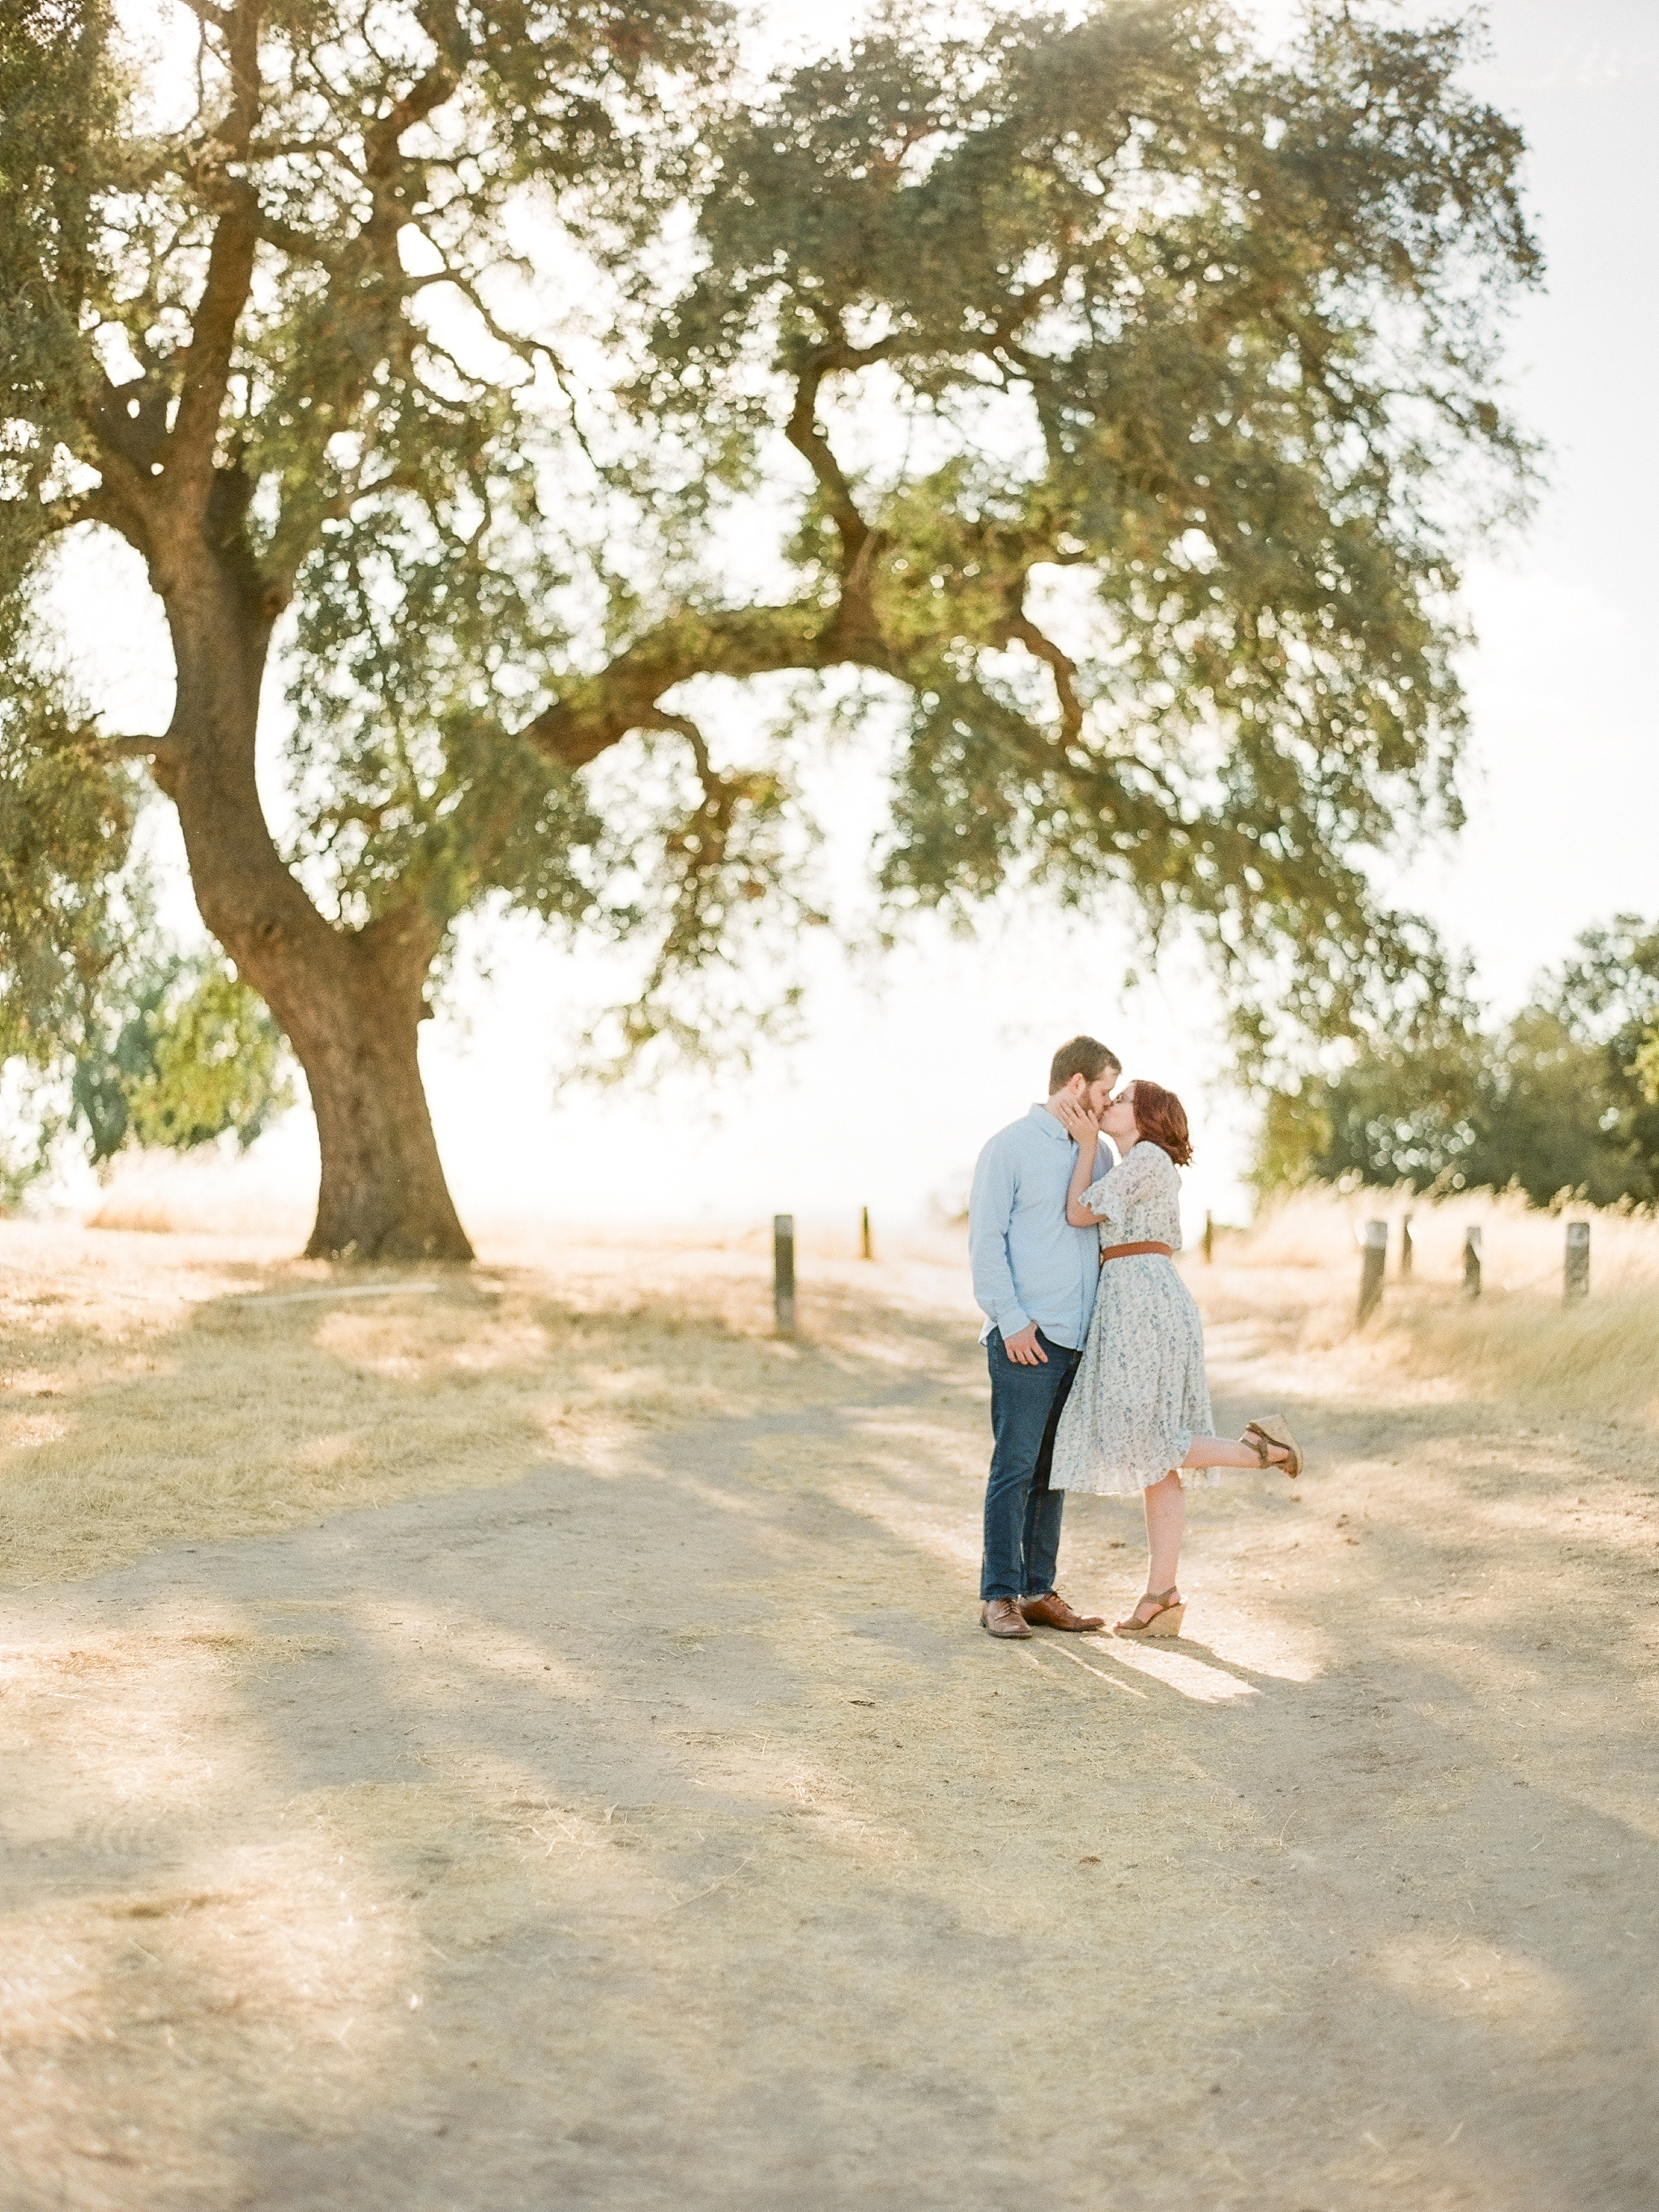 K+M :: SONOMA, CALIFORNIA   PORTRAIT